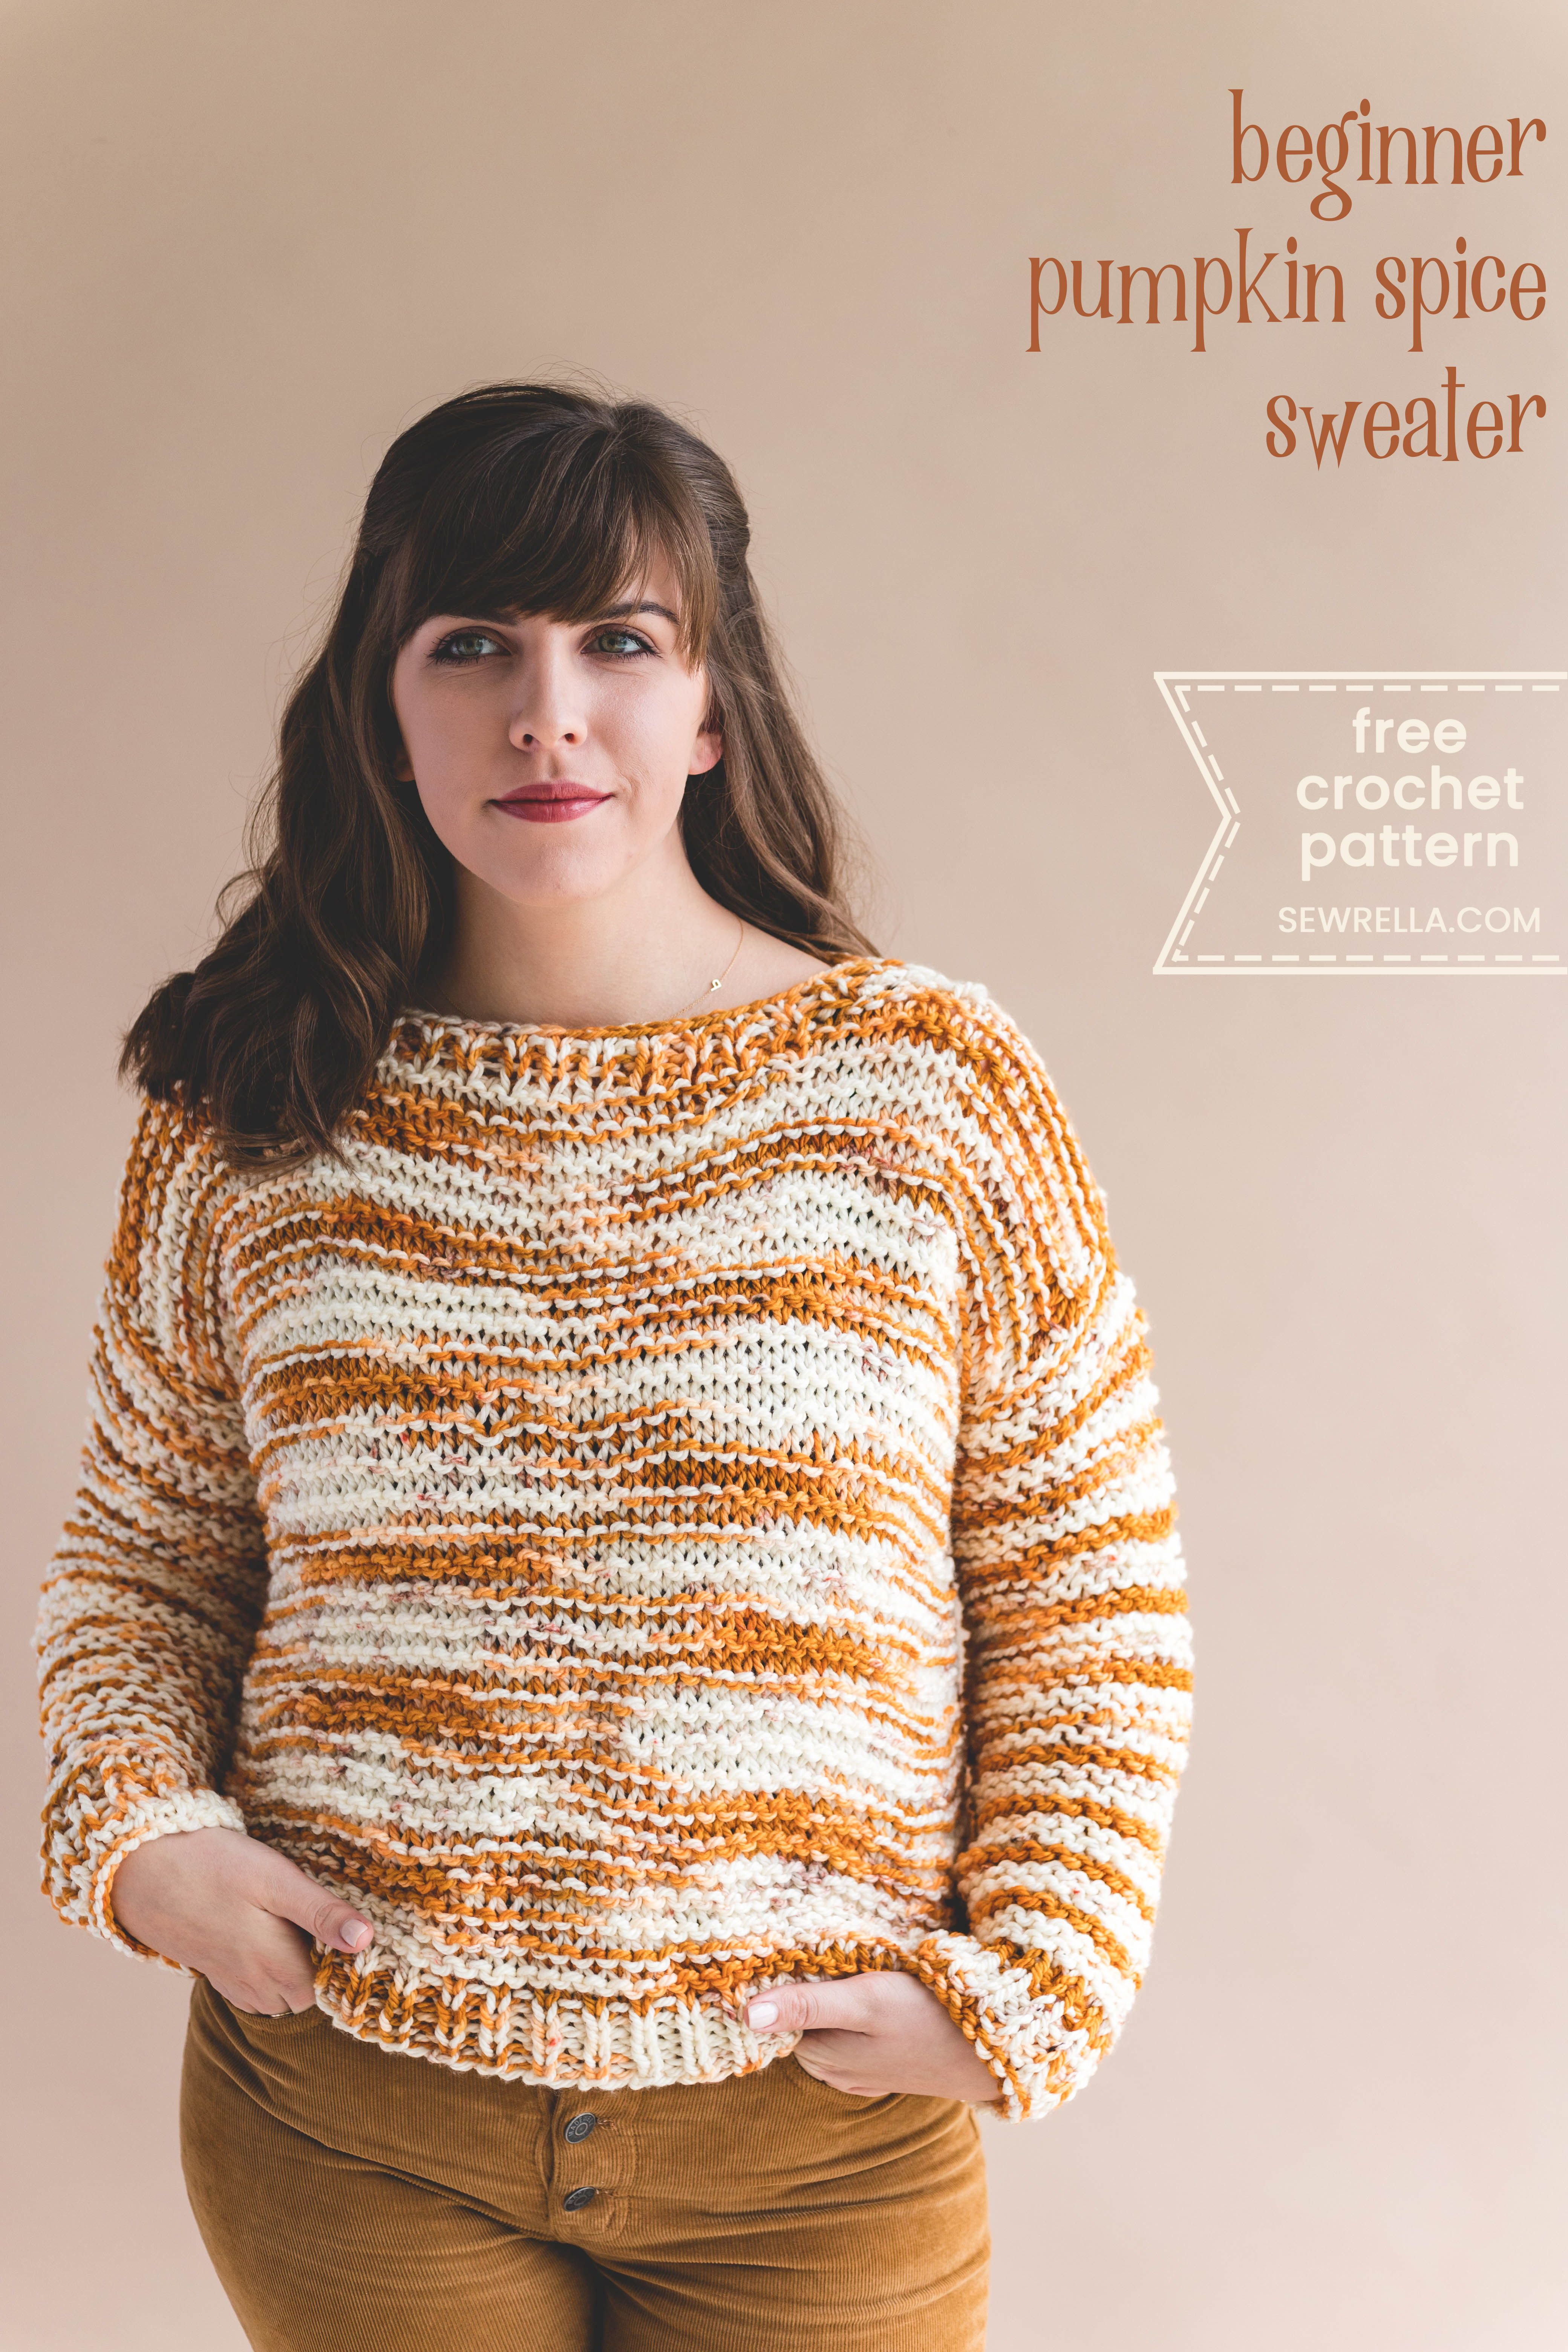 6d1cee1bf Check out this free knit sweater pattern